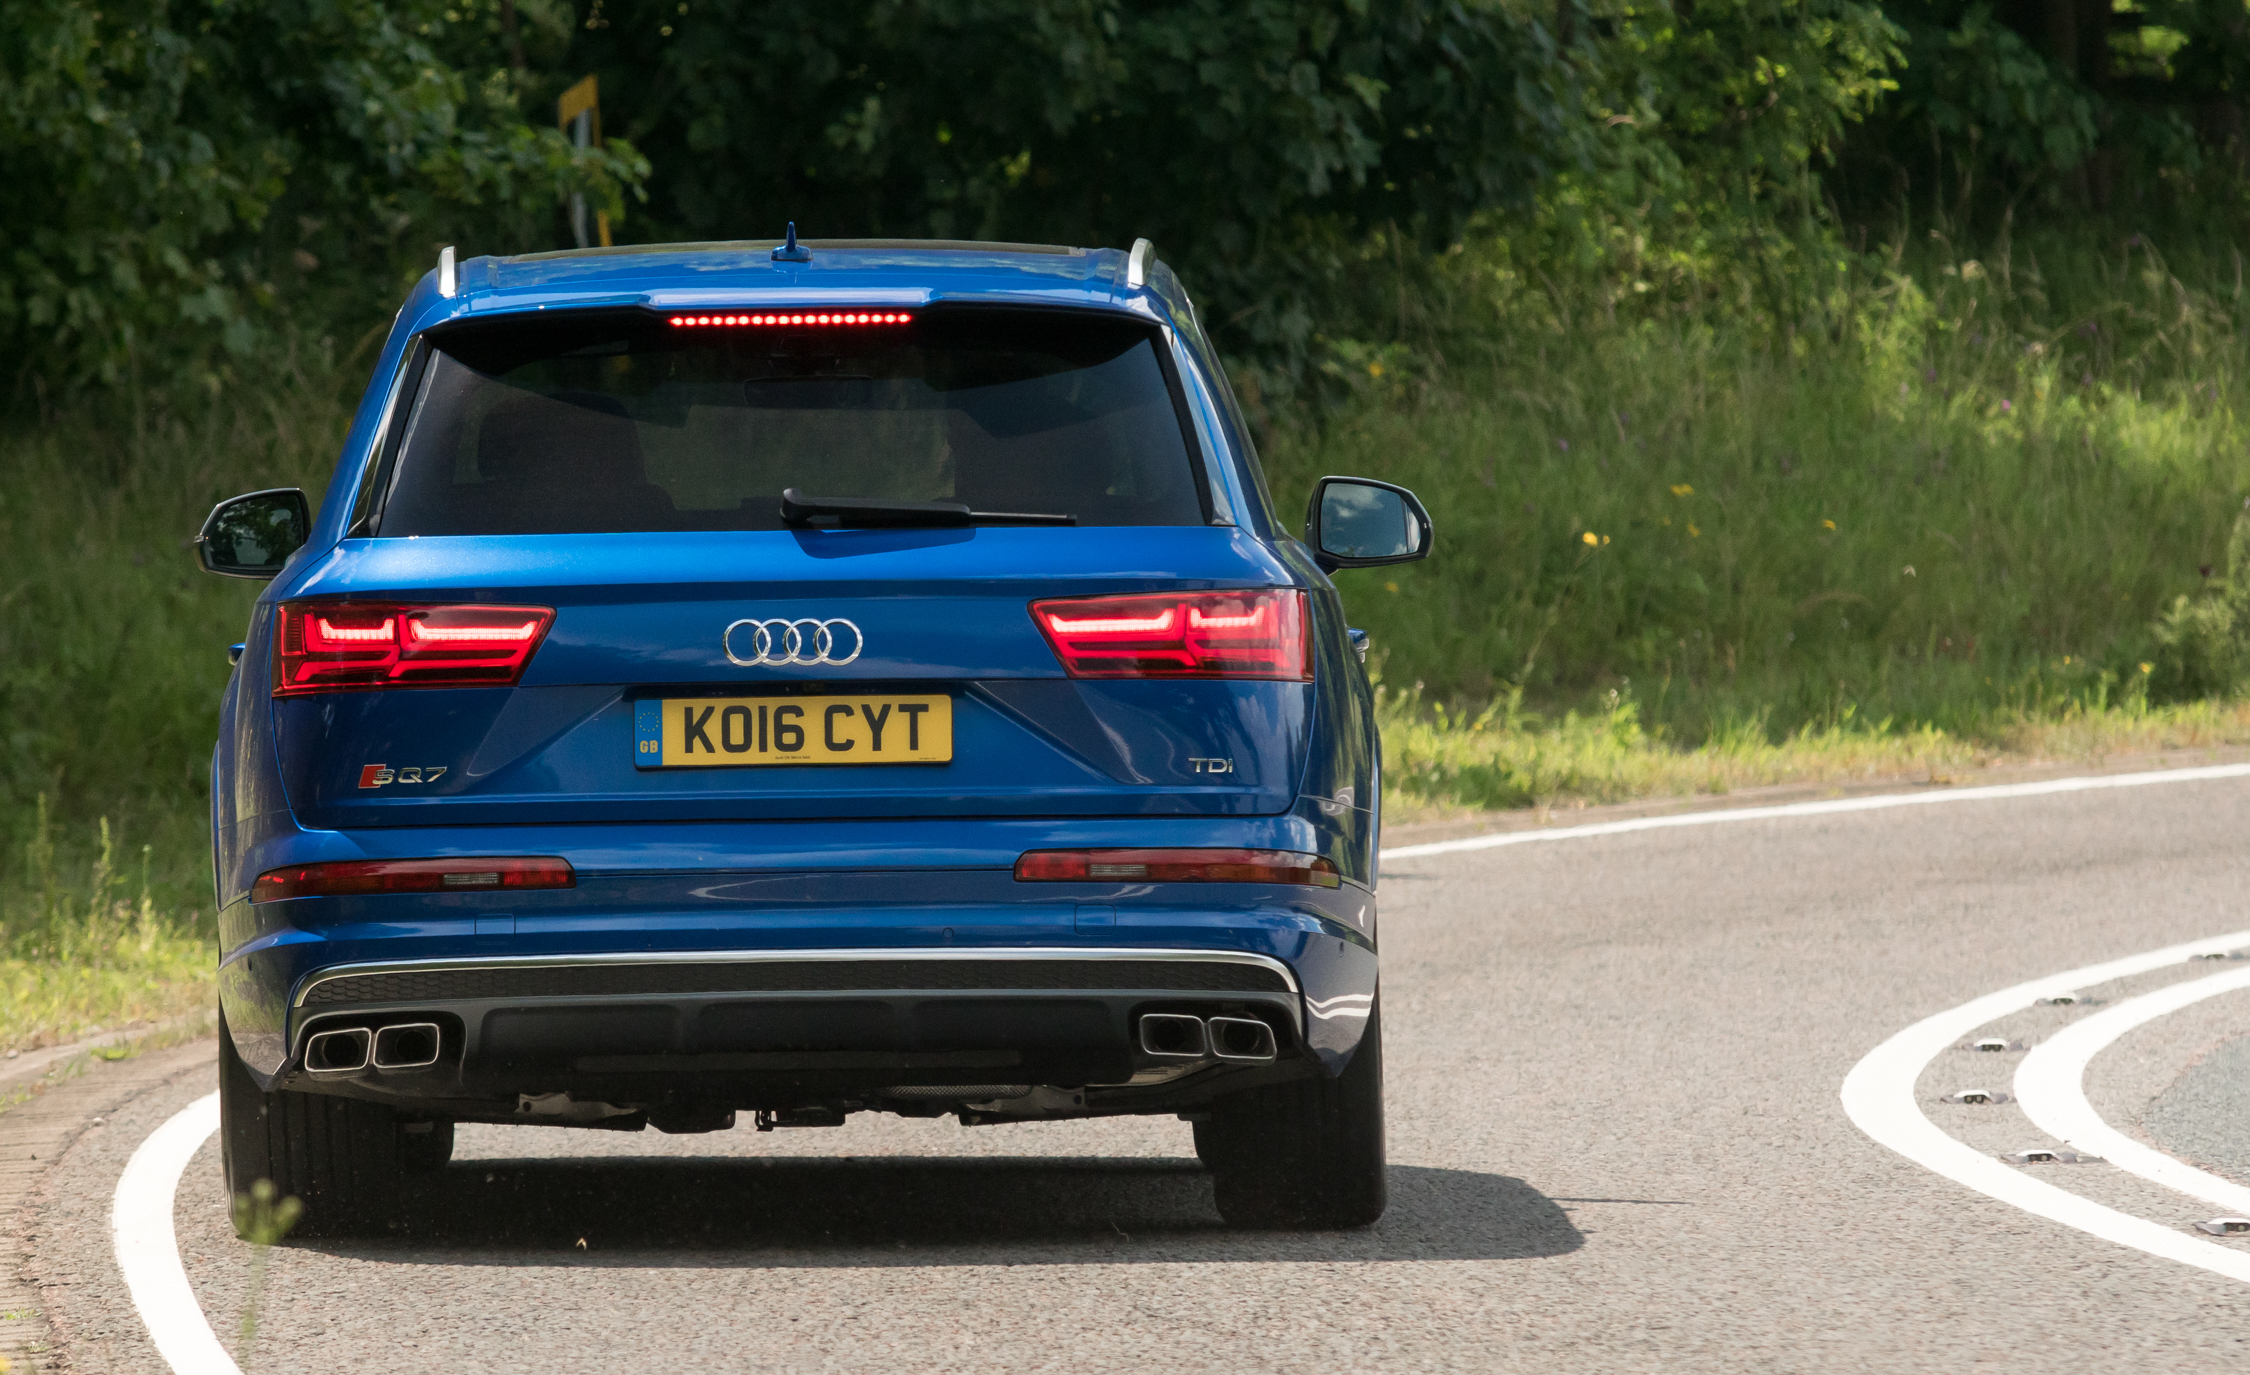 2017 Audi Sq7 Exterior Rear (Photo 5 of 15)